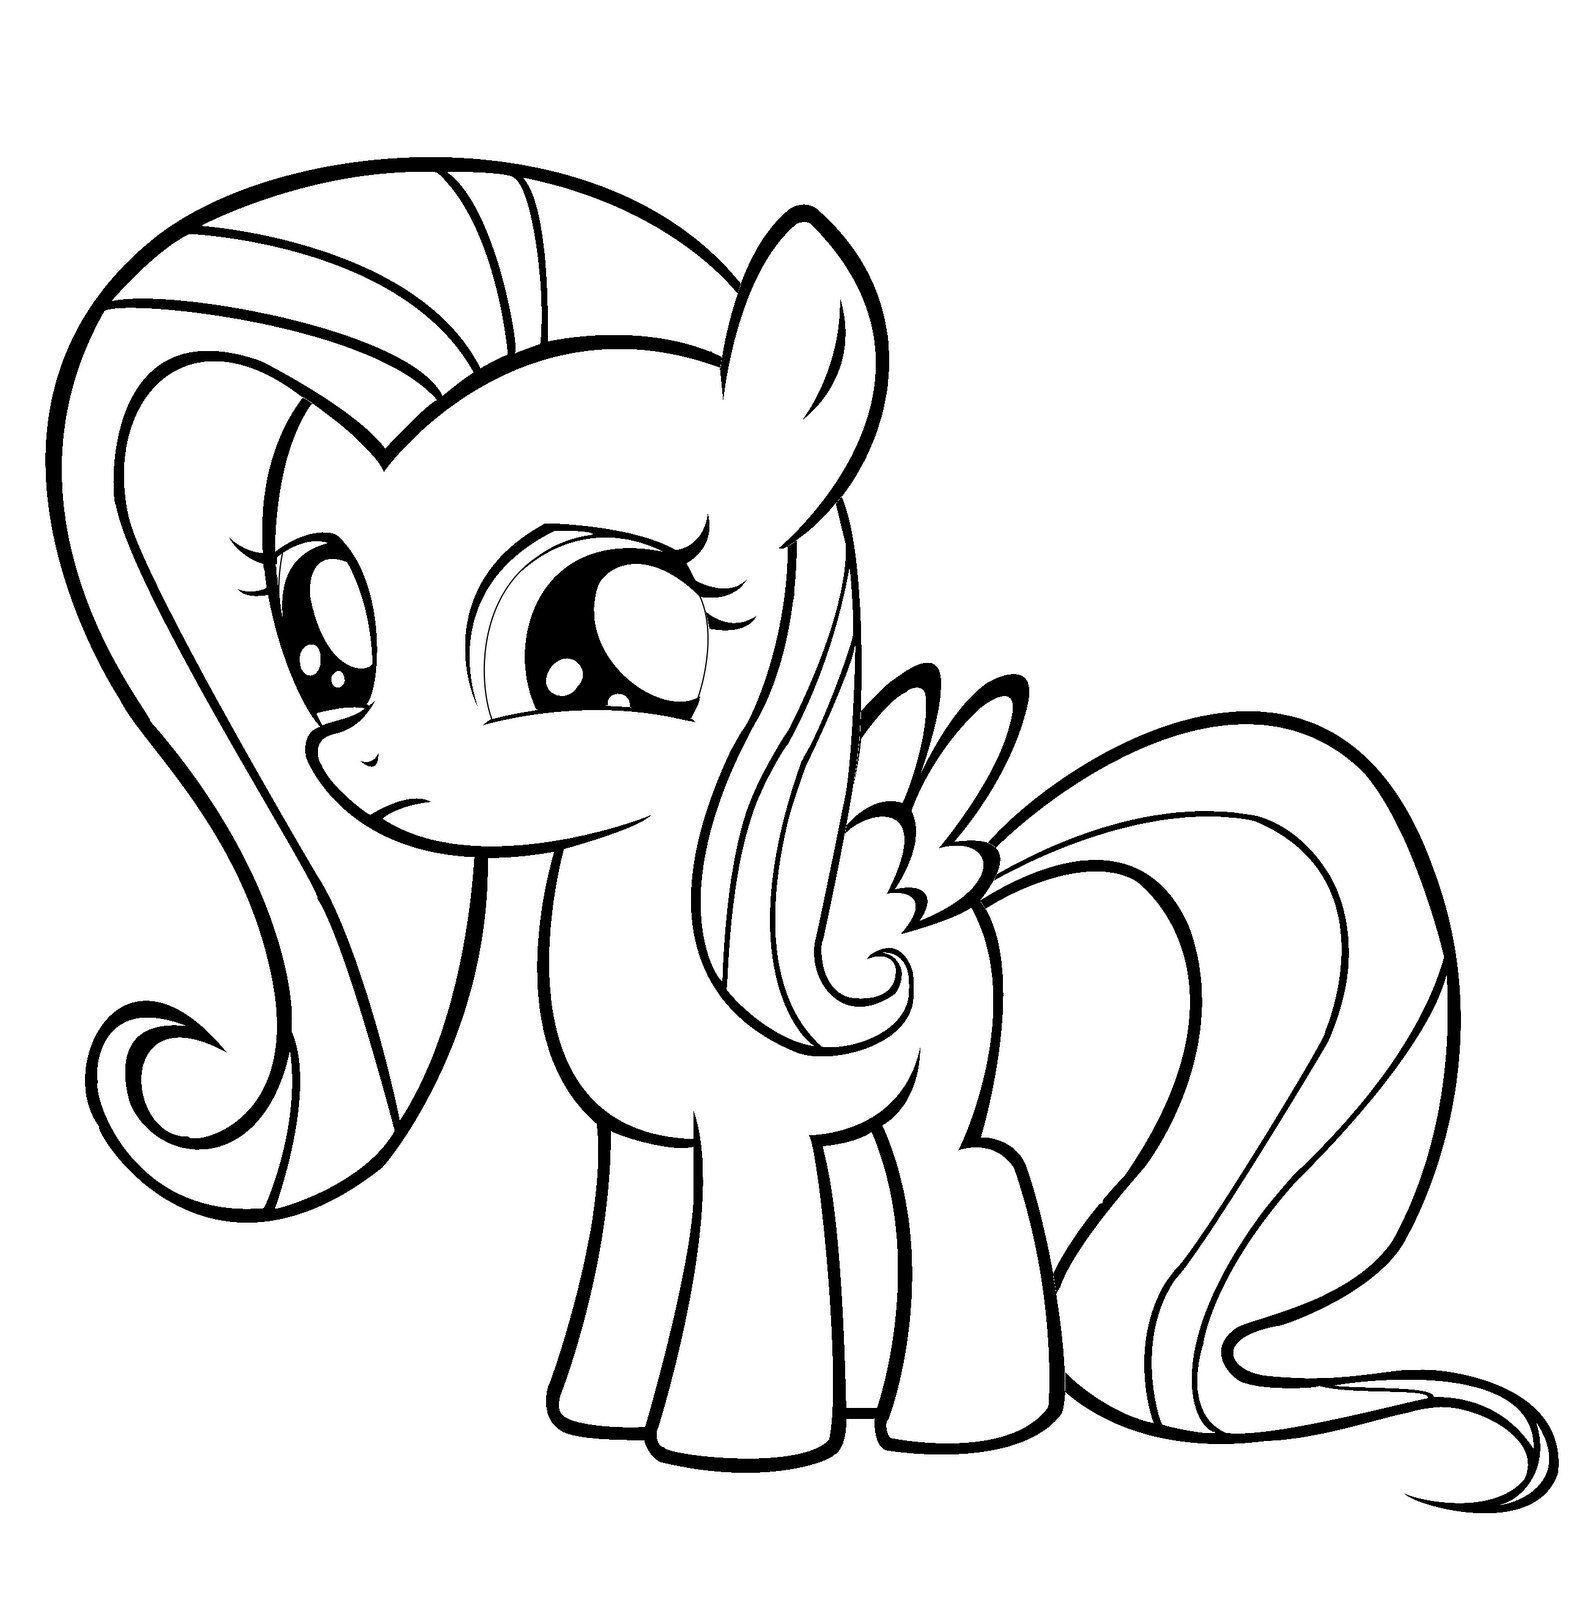 coloring pages for girls my little pony my little pony coloring pages print and colorcom pages for pony coloring little my girls